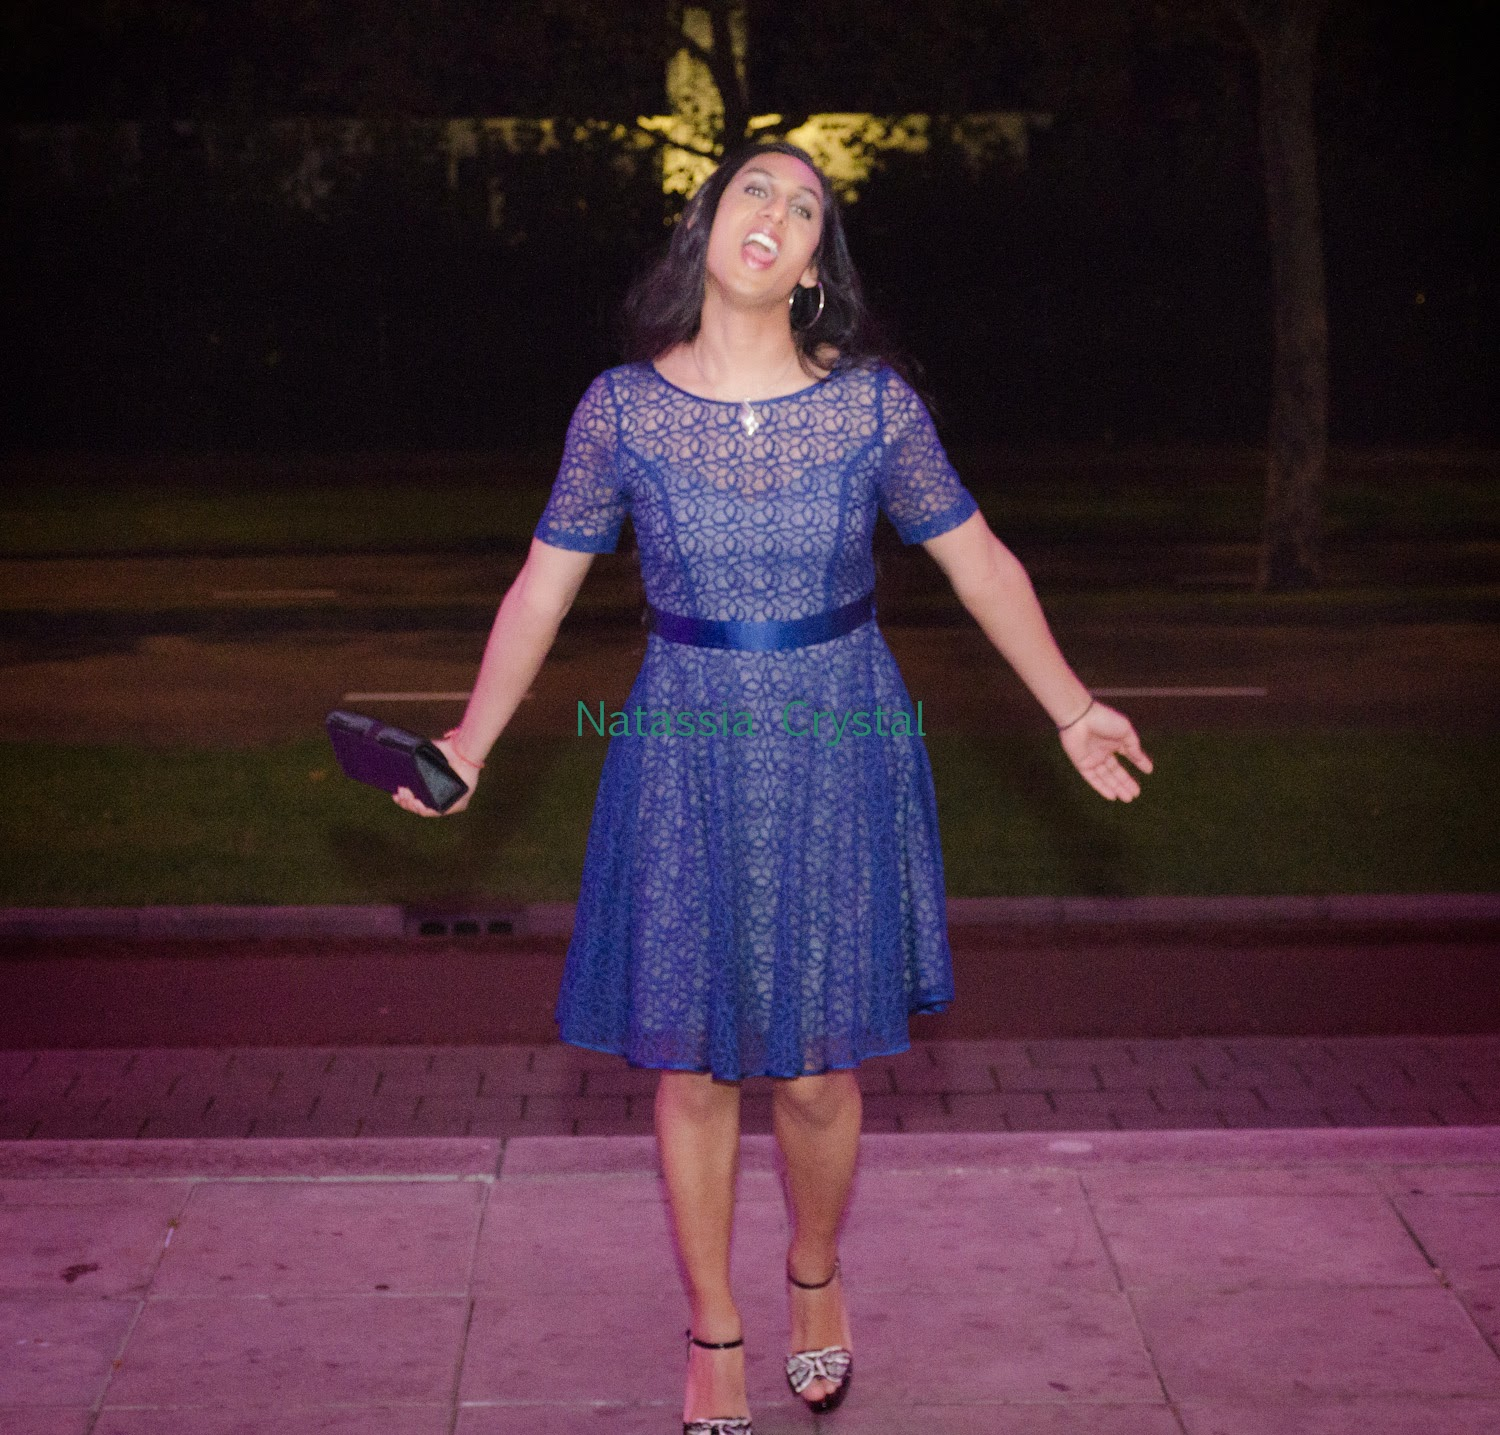 Natassia Crystal natcrys, blue prom dress, high heeled sandals, outside at night, being silly